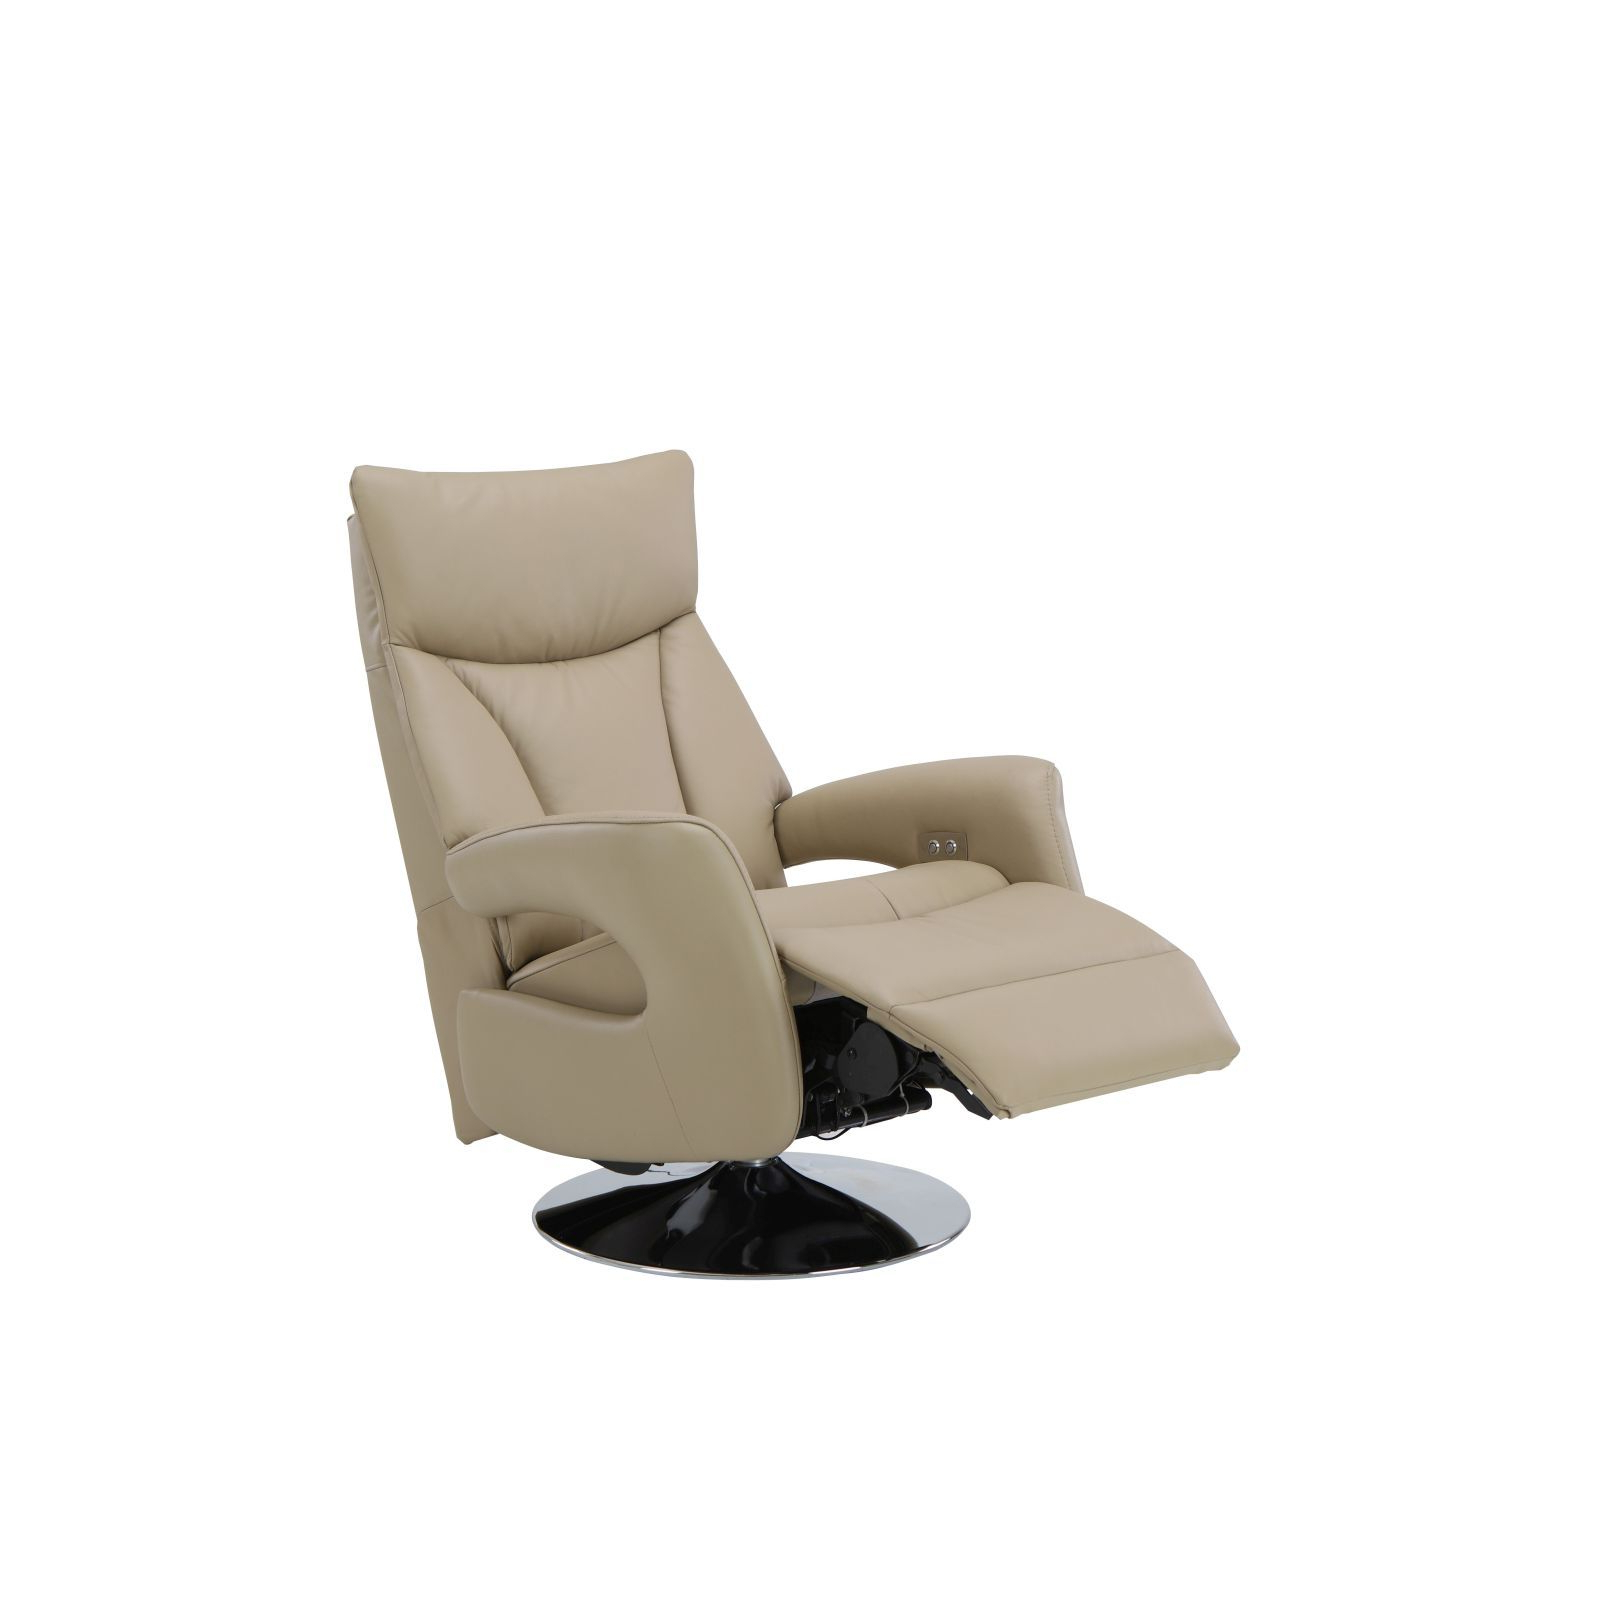 Stanley Power Lift Chair (hl) Half Leather Recliner Sofa – Sofa Regarding Famous Recliner Sofa Chairs (View 13 of 20)